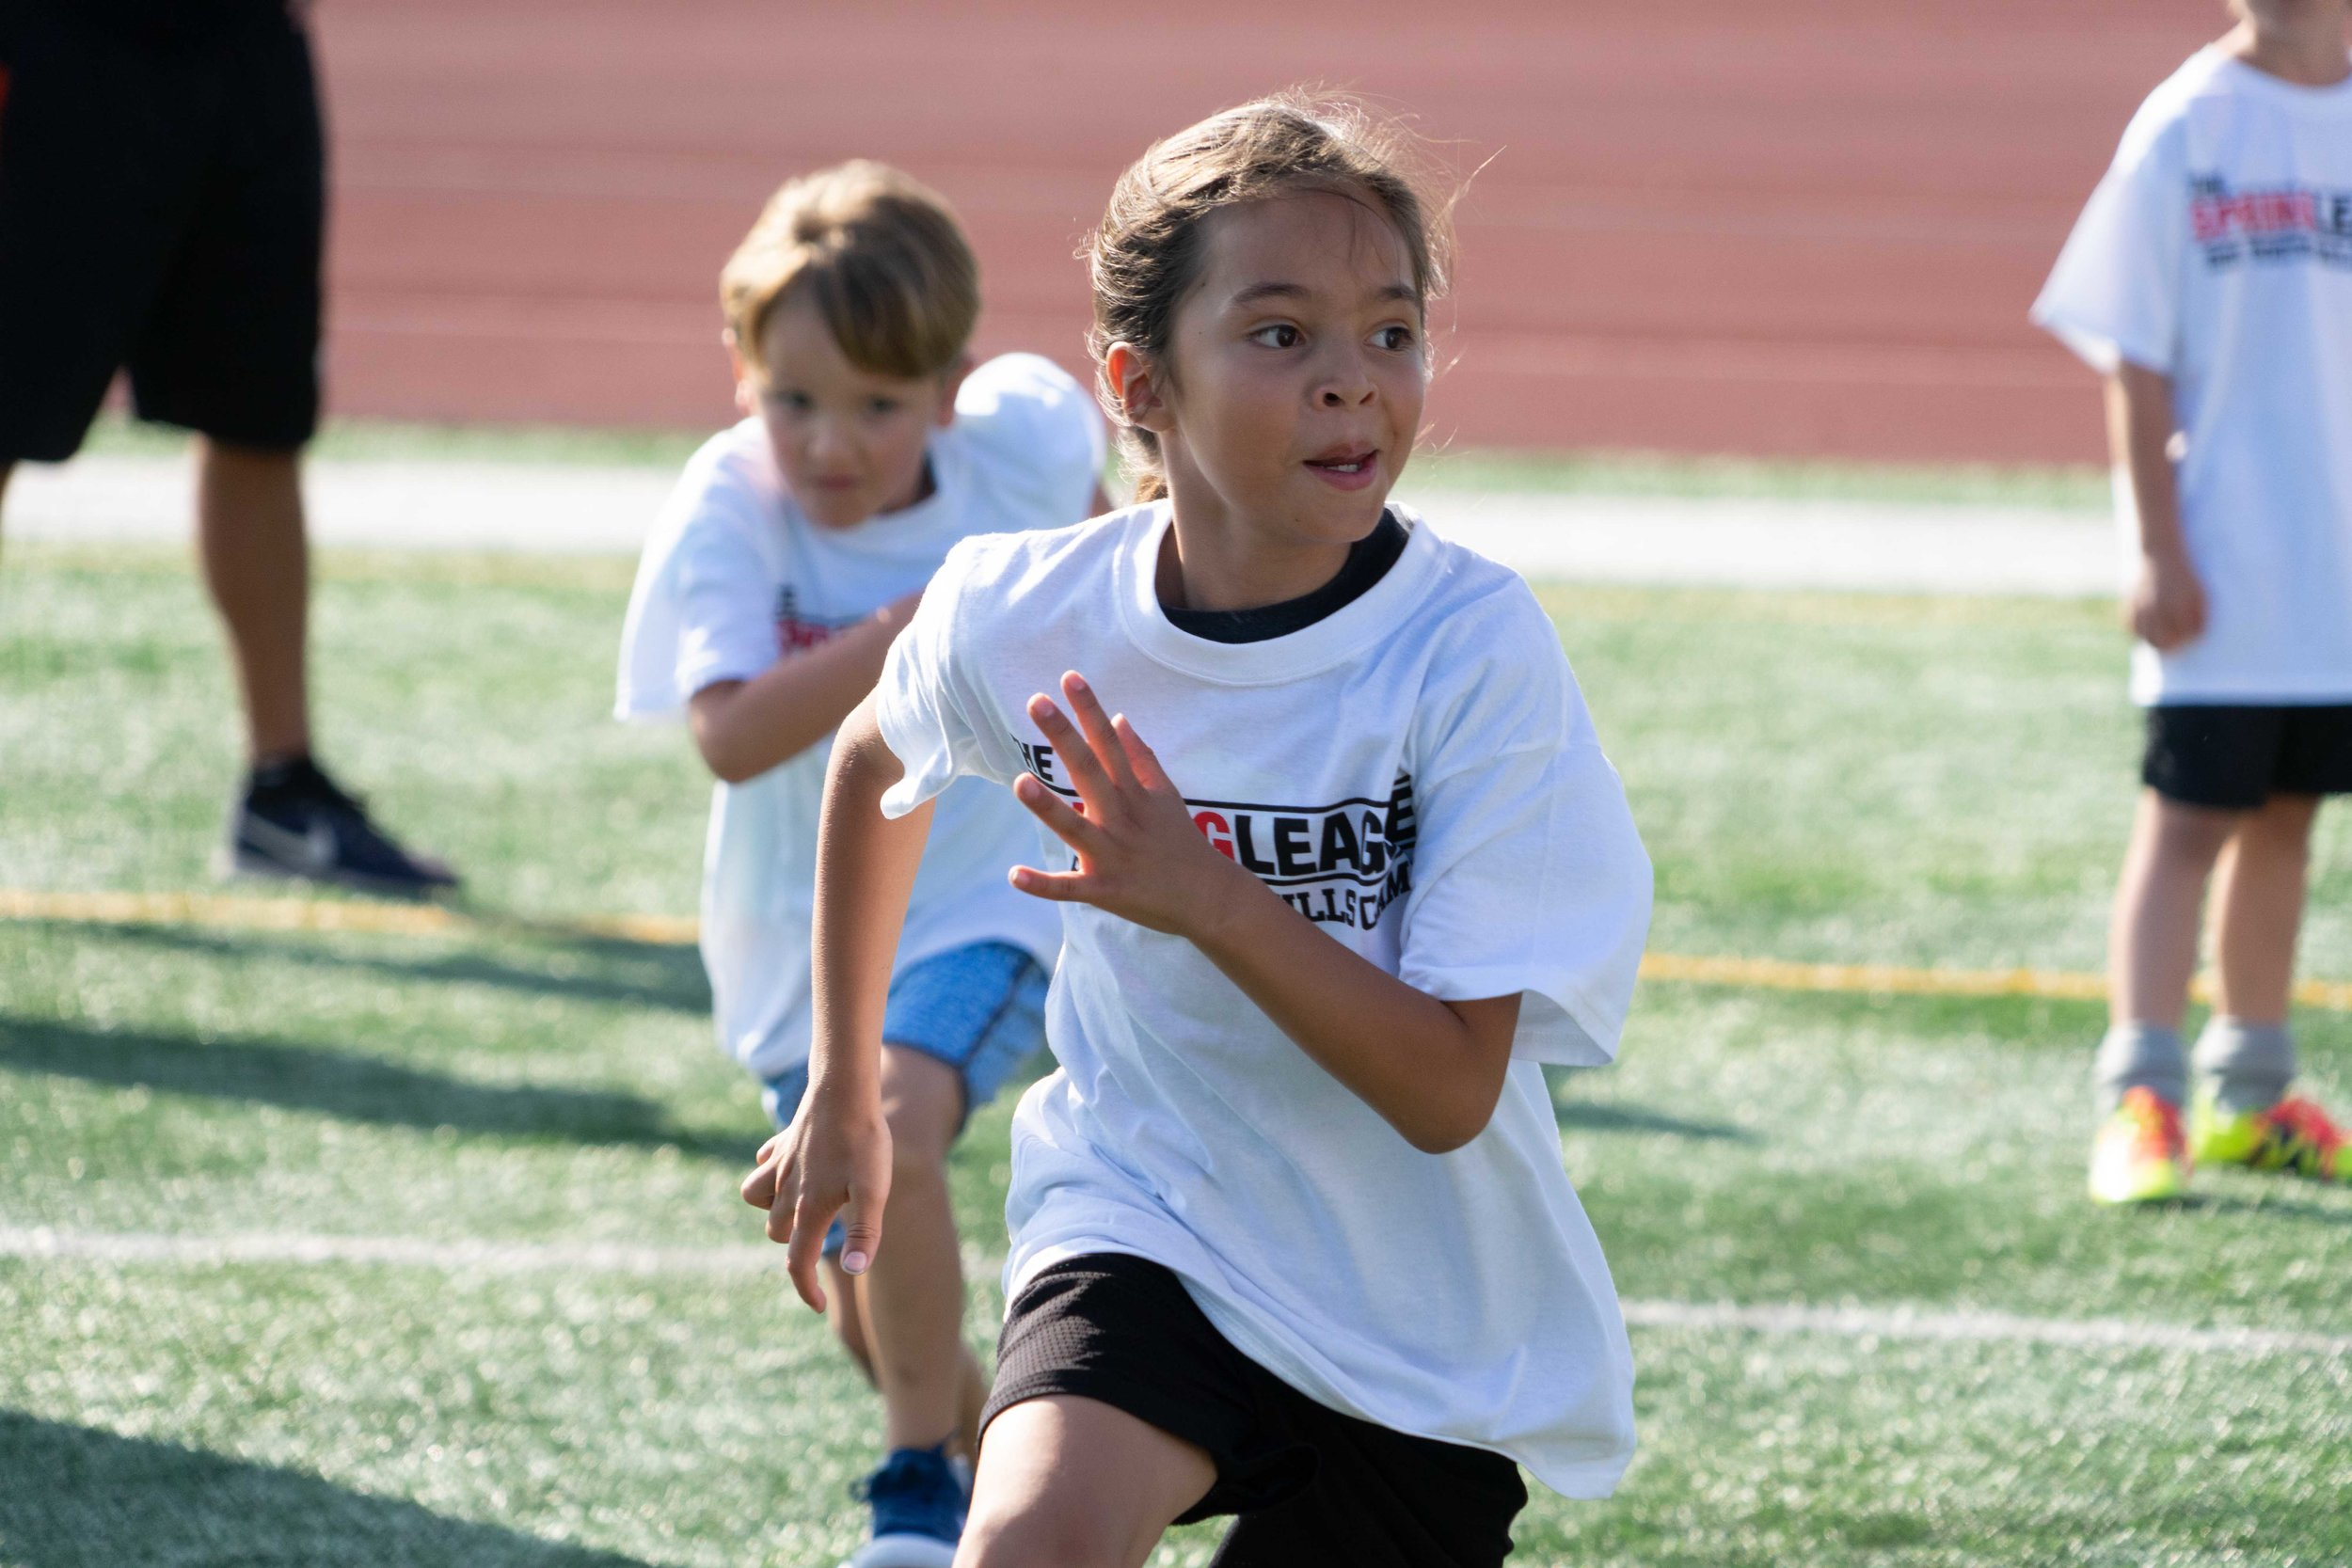 The Spring League Kids Skills Camp-8.jpg